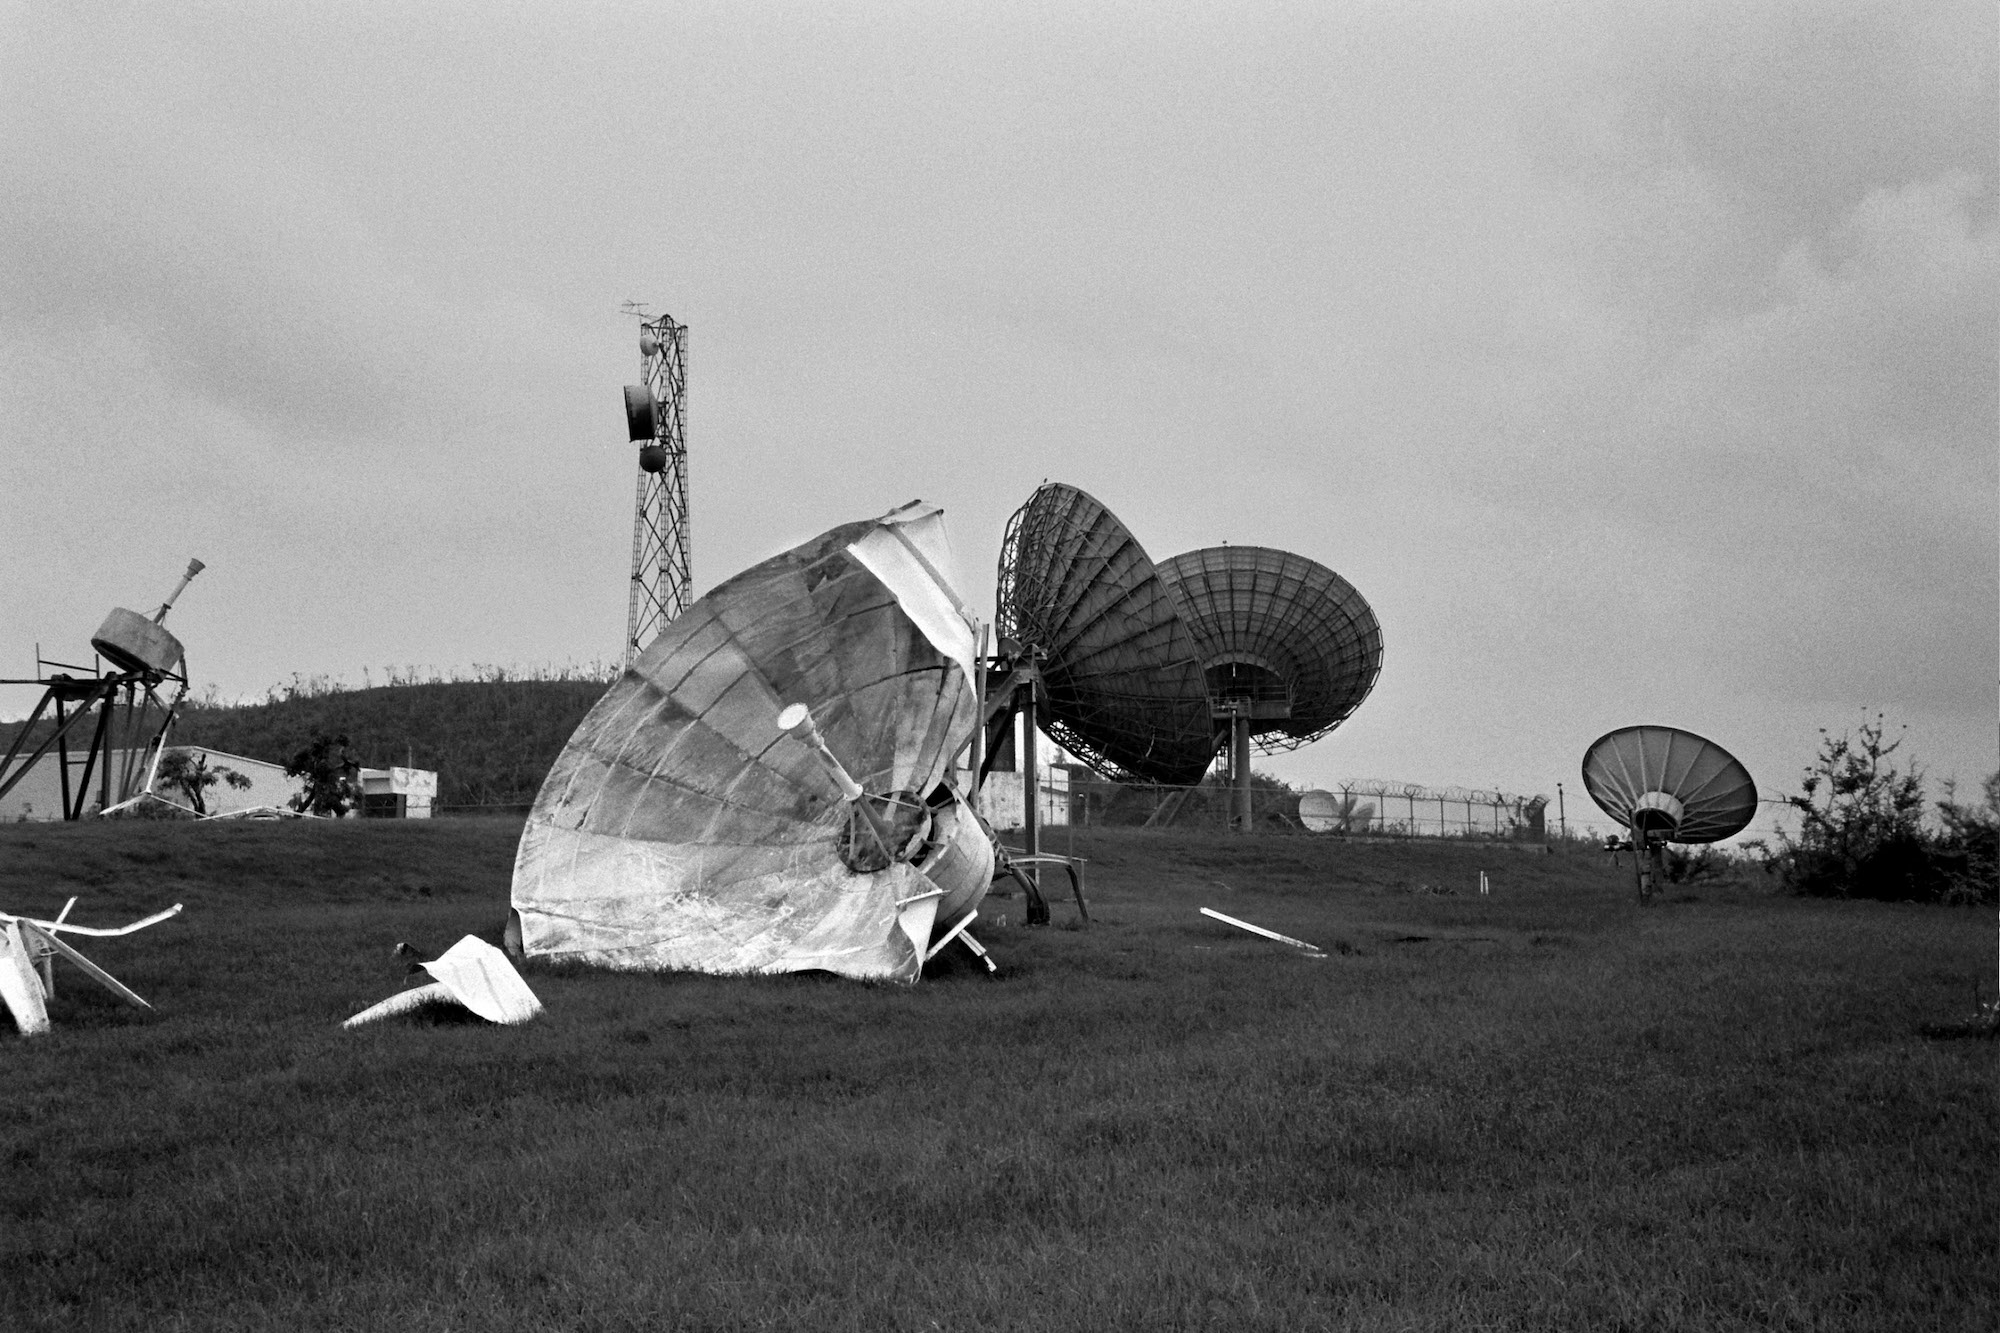 Satellite dishes in Humacao were destroyed by Hurricane Maria, which knocked out power and communications across the island.